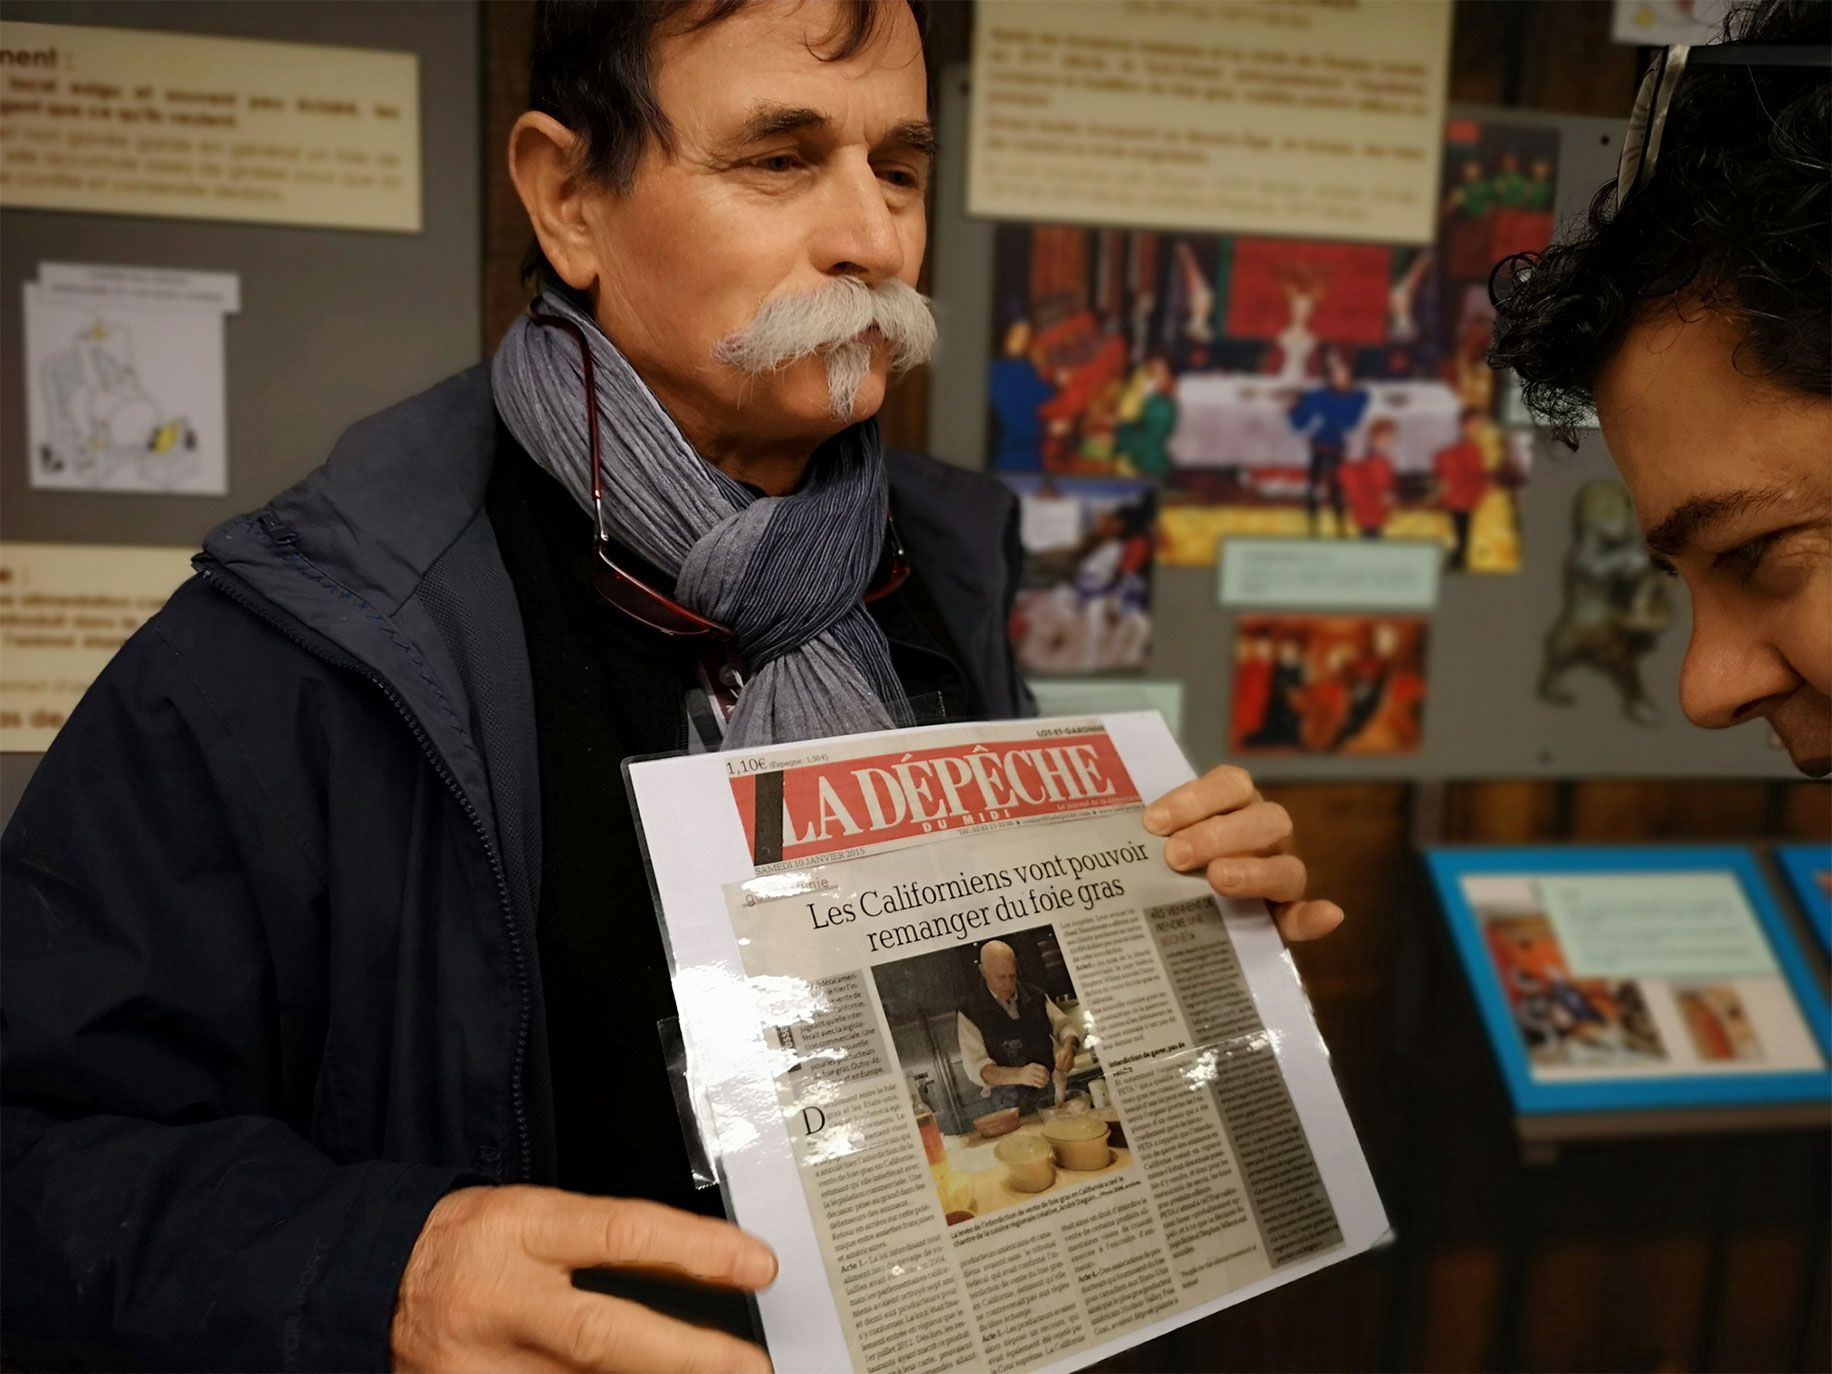 Museum of Foie Gras's owner Yves Boissiere holds a local newspaper from January 2015 celebrating a US court's decision to overturn California's foie gras ban. The Museum is located on the farm where Boissiere raises ducks and produces foie gras in Souleilles.